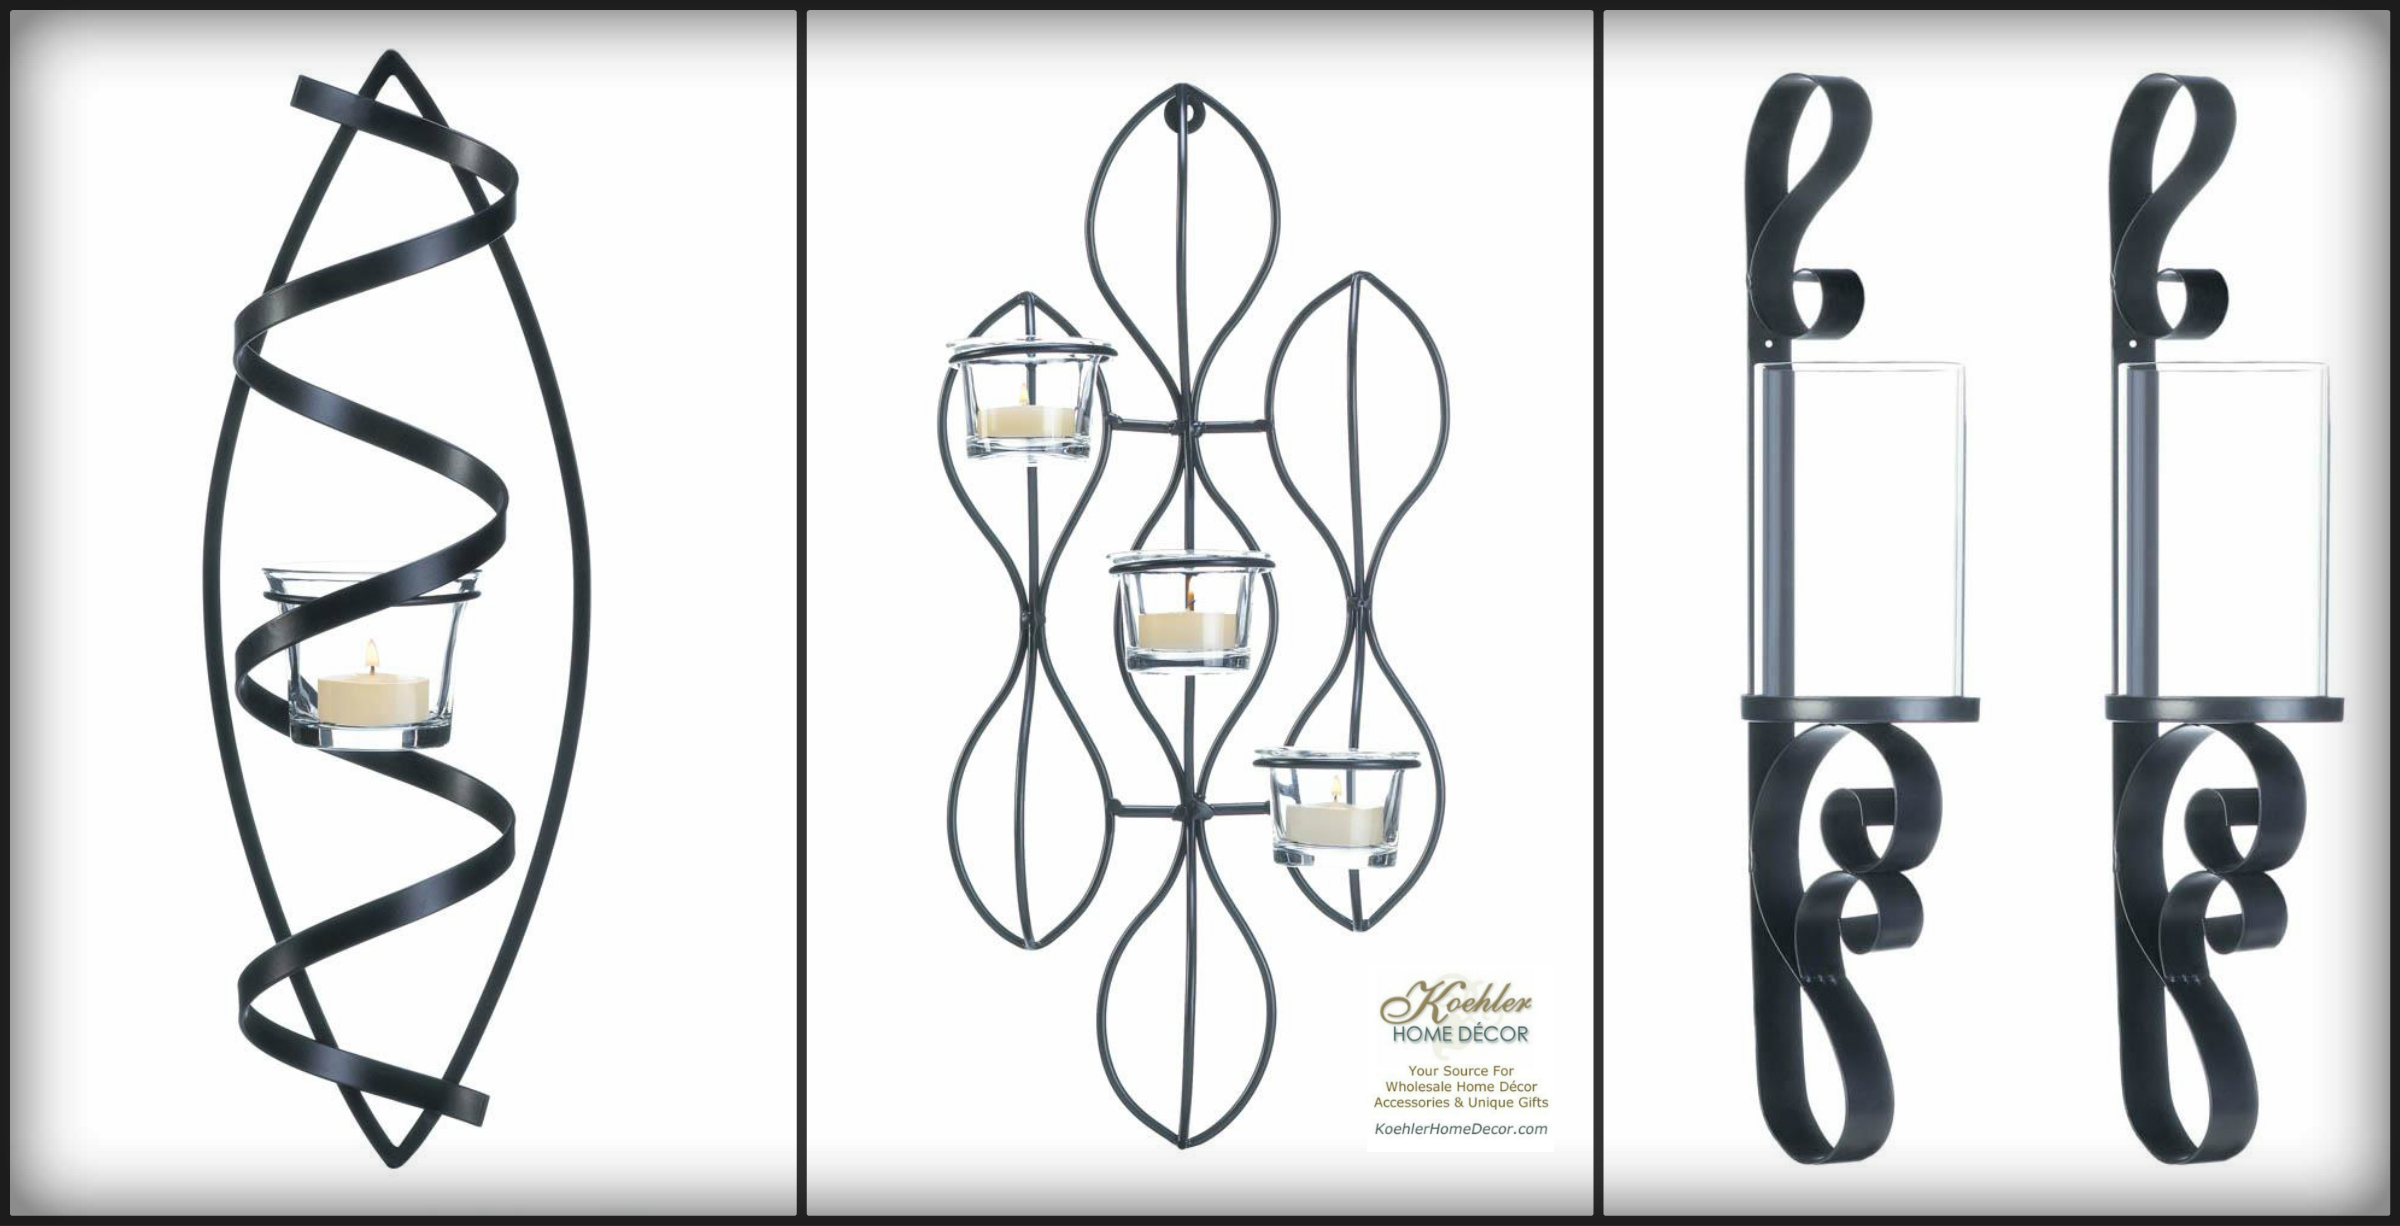 New at KHD – Elegant Wall Sconce Collection